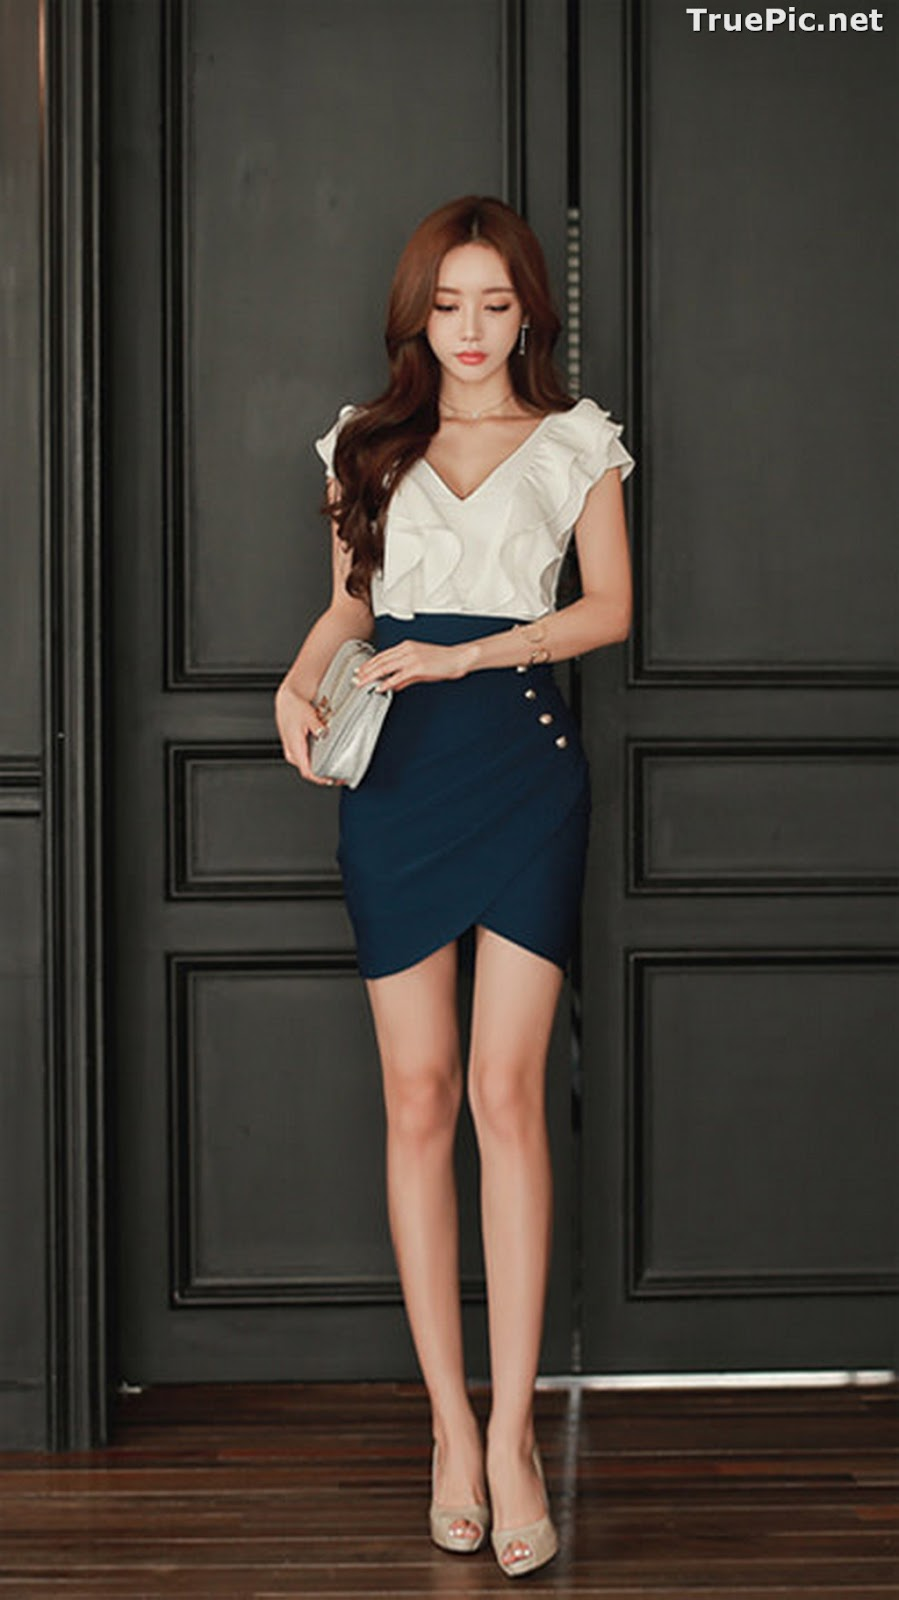 Image Son Yoon Joo Beautiful Photos – Korean Fashion Collection #4 - TruePic.net - Picture-4